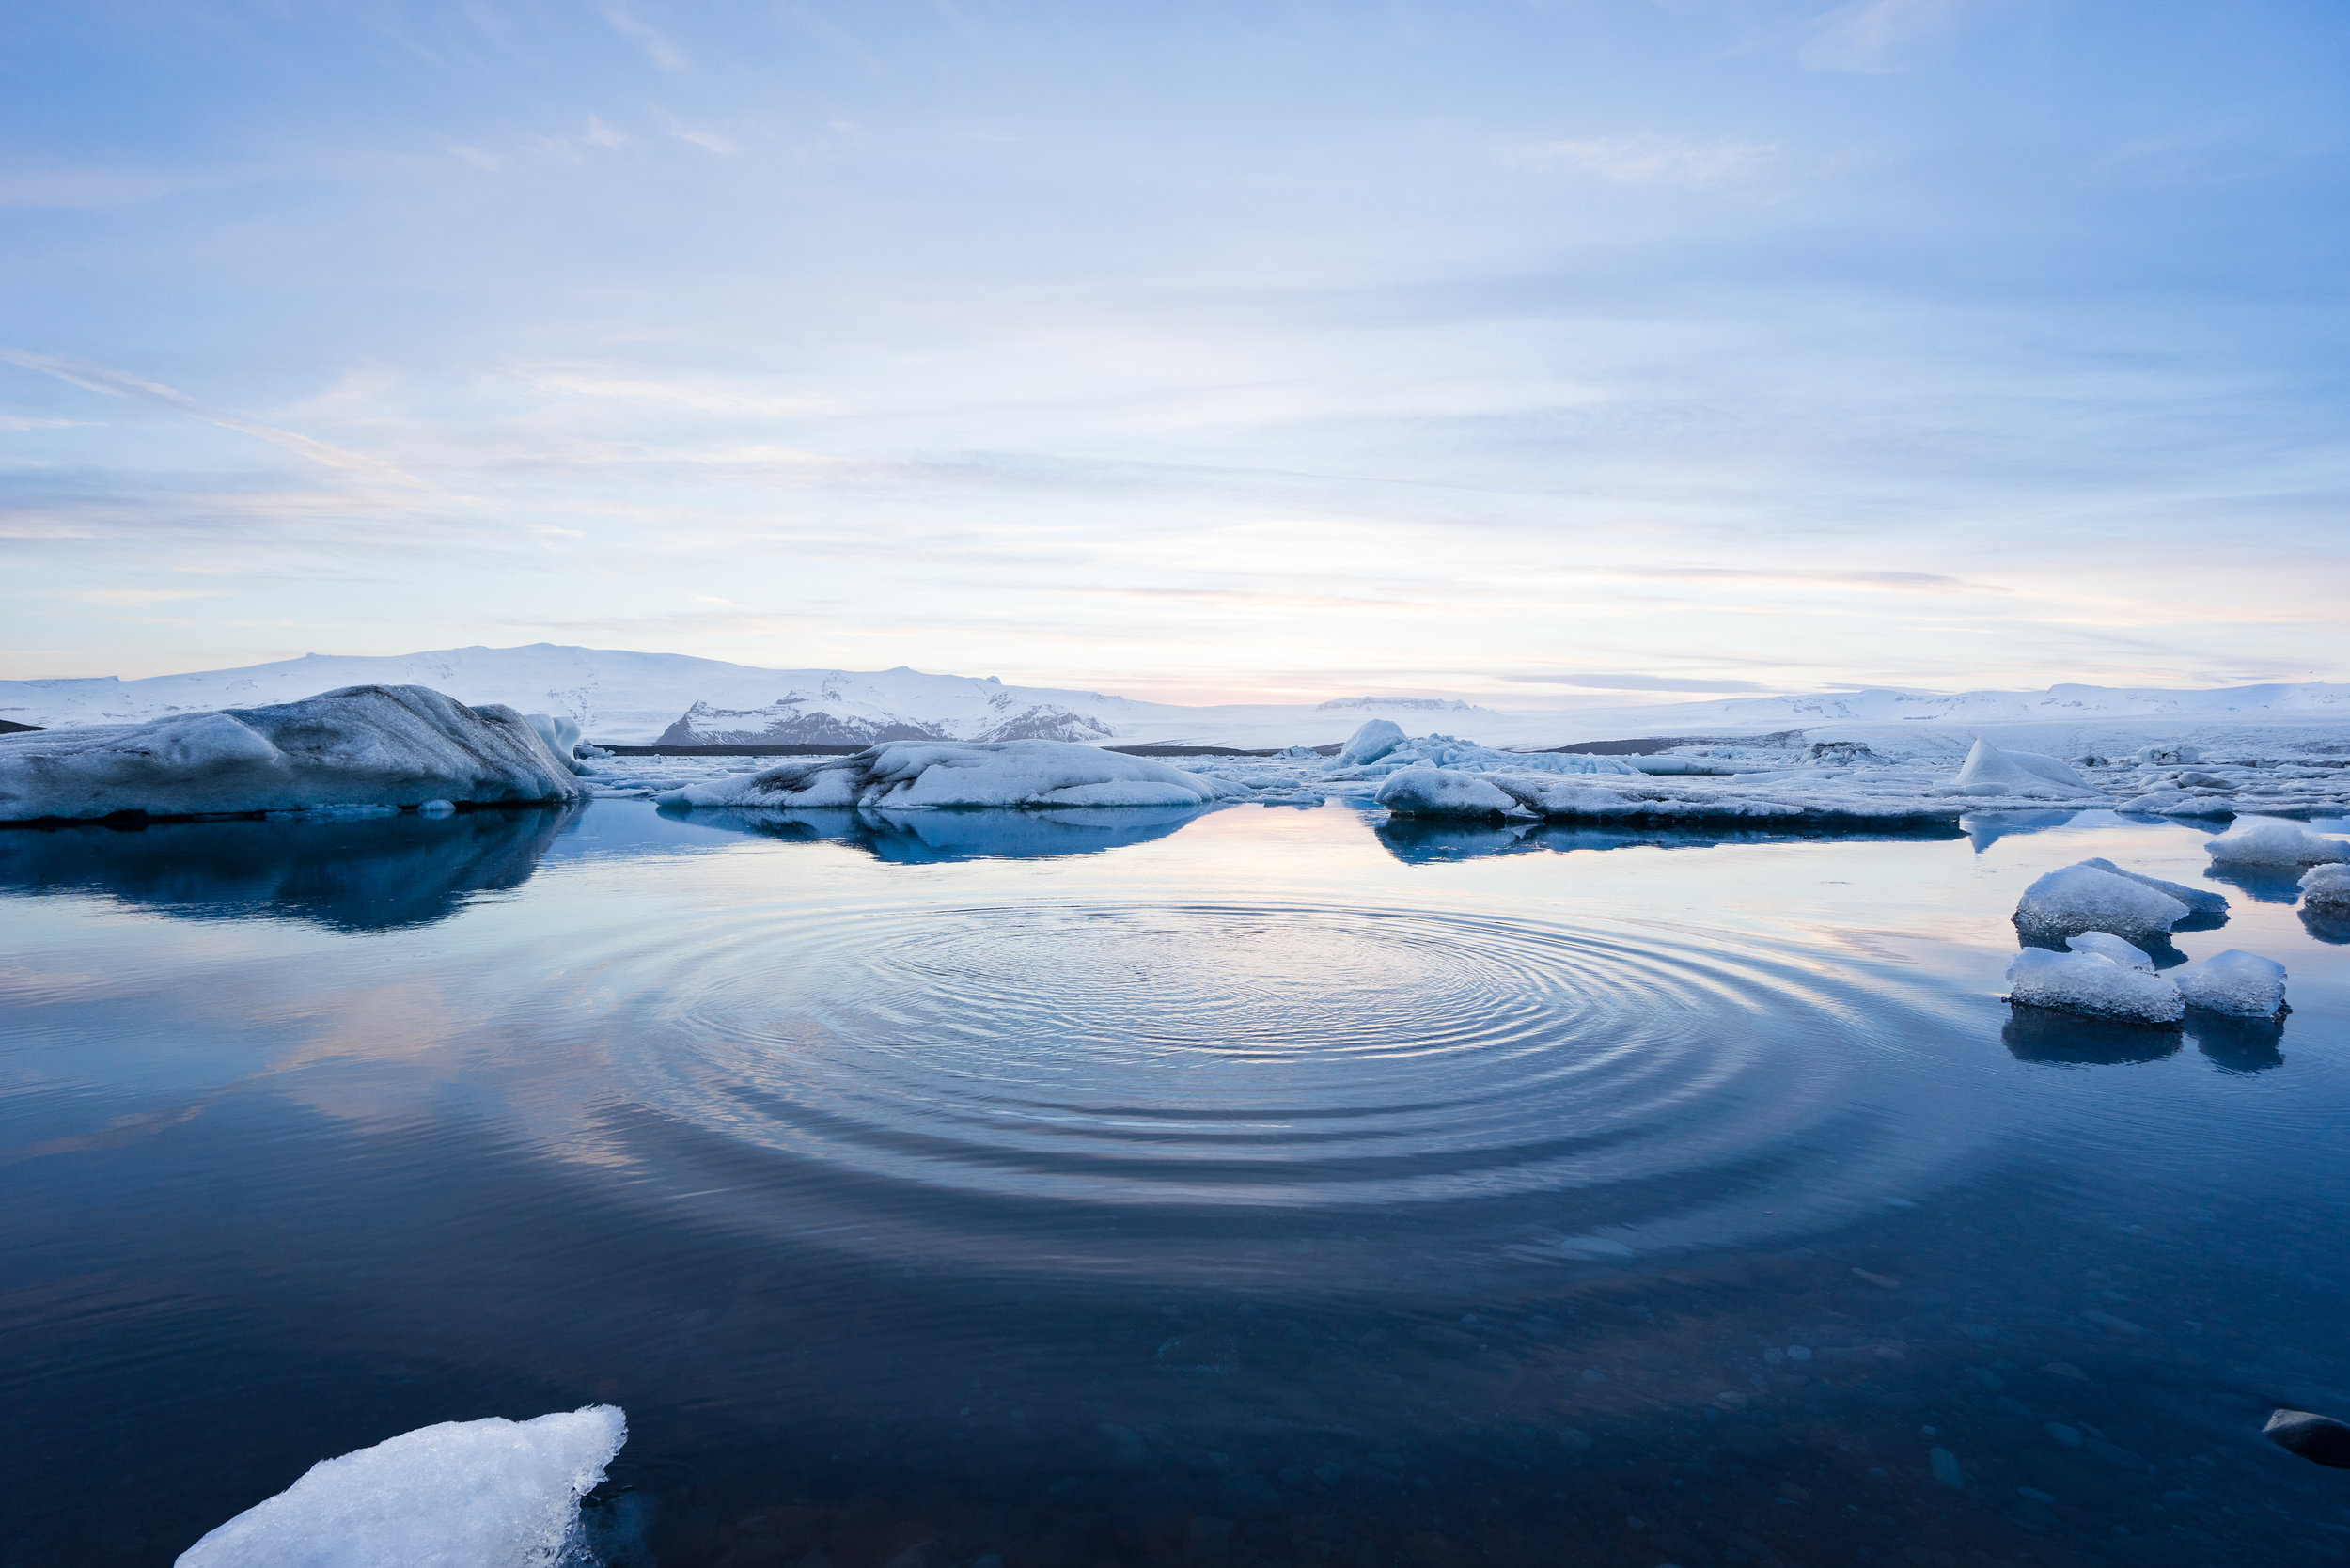 Arctic ice has reached record lows in recent years, and scientists believe we could see an ice-free arctic by 2050. Photo credit: Jeremy Goldberg